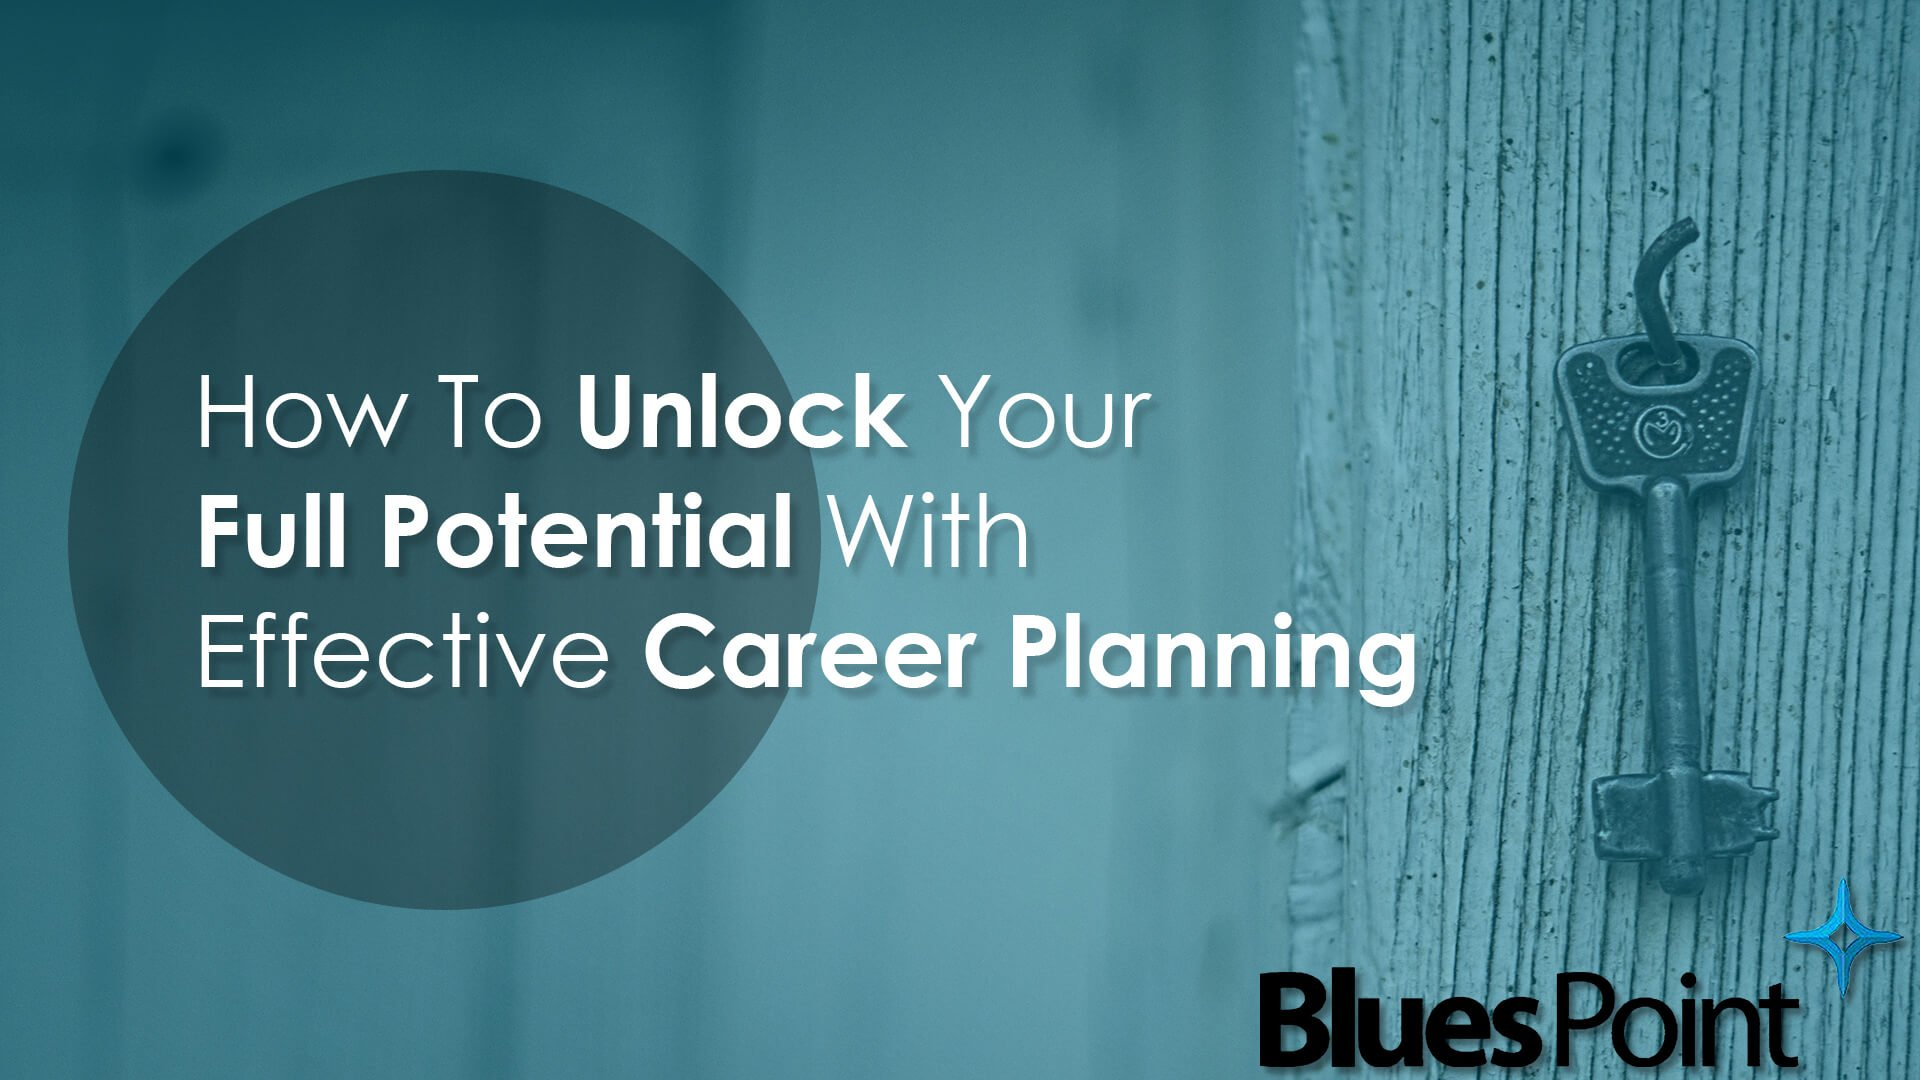 How To Unlock Your Full Potential With Effective Career Planning Blues Point